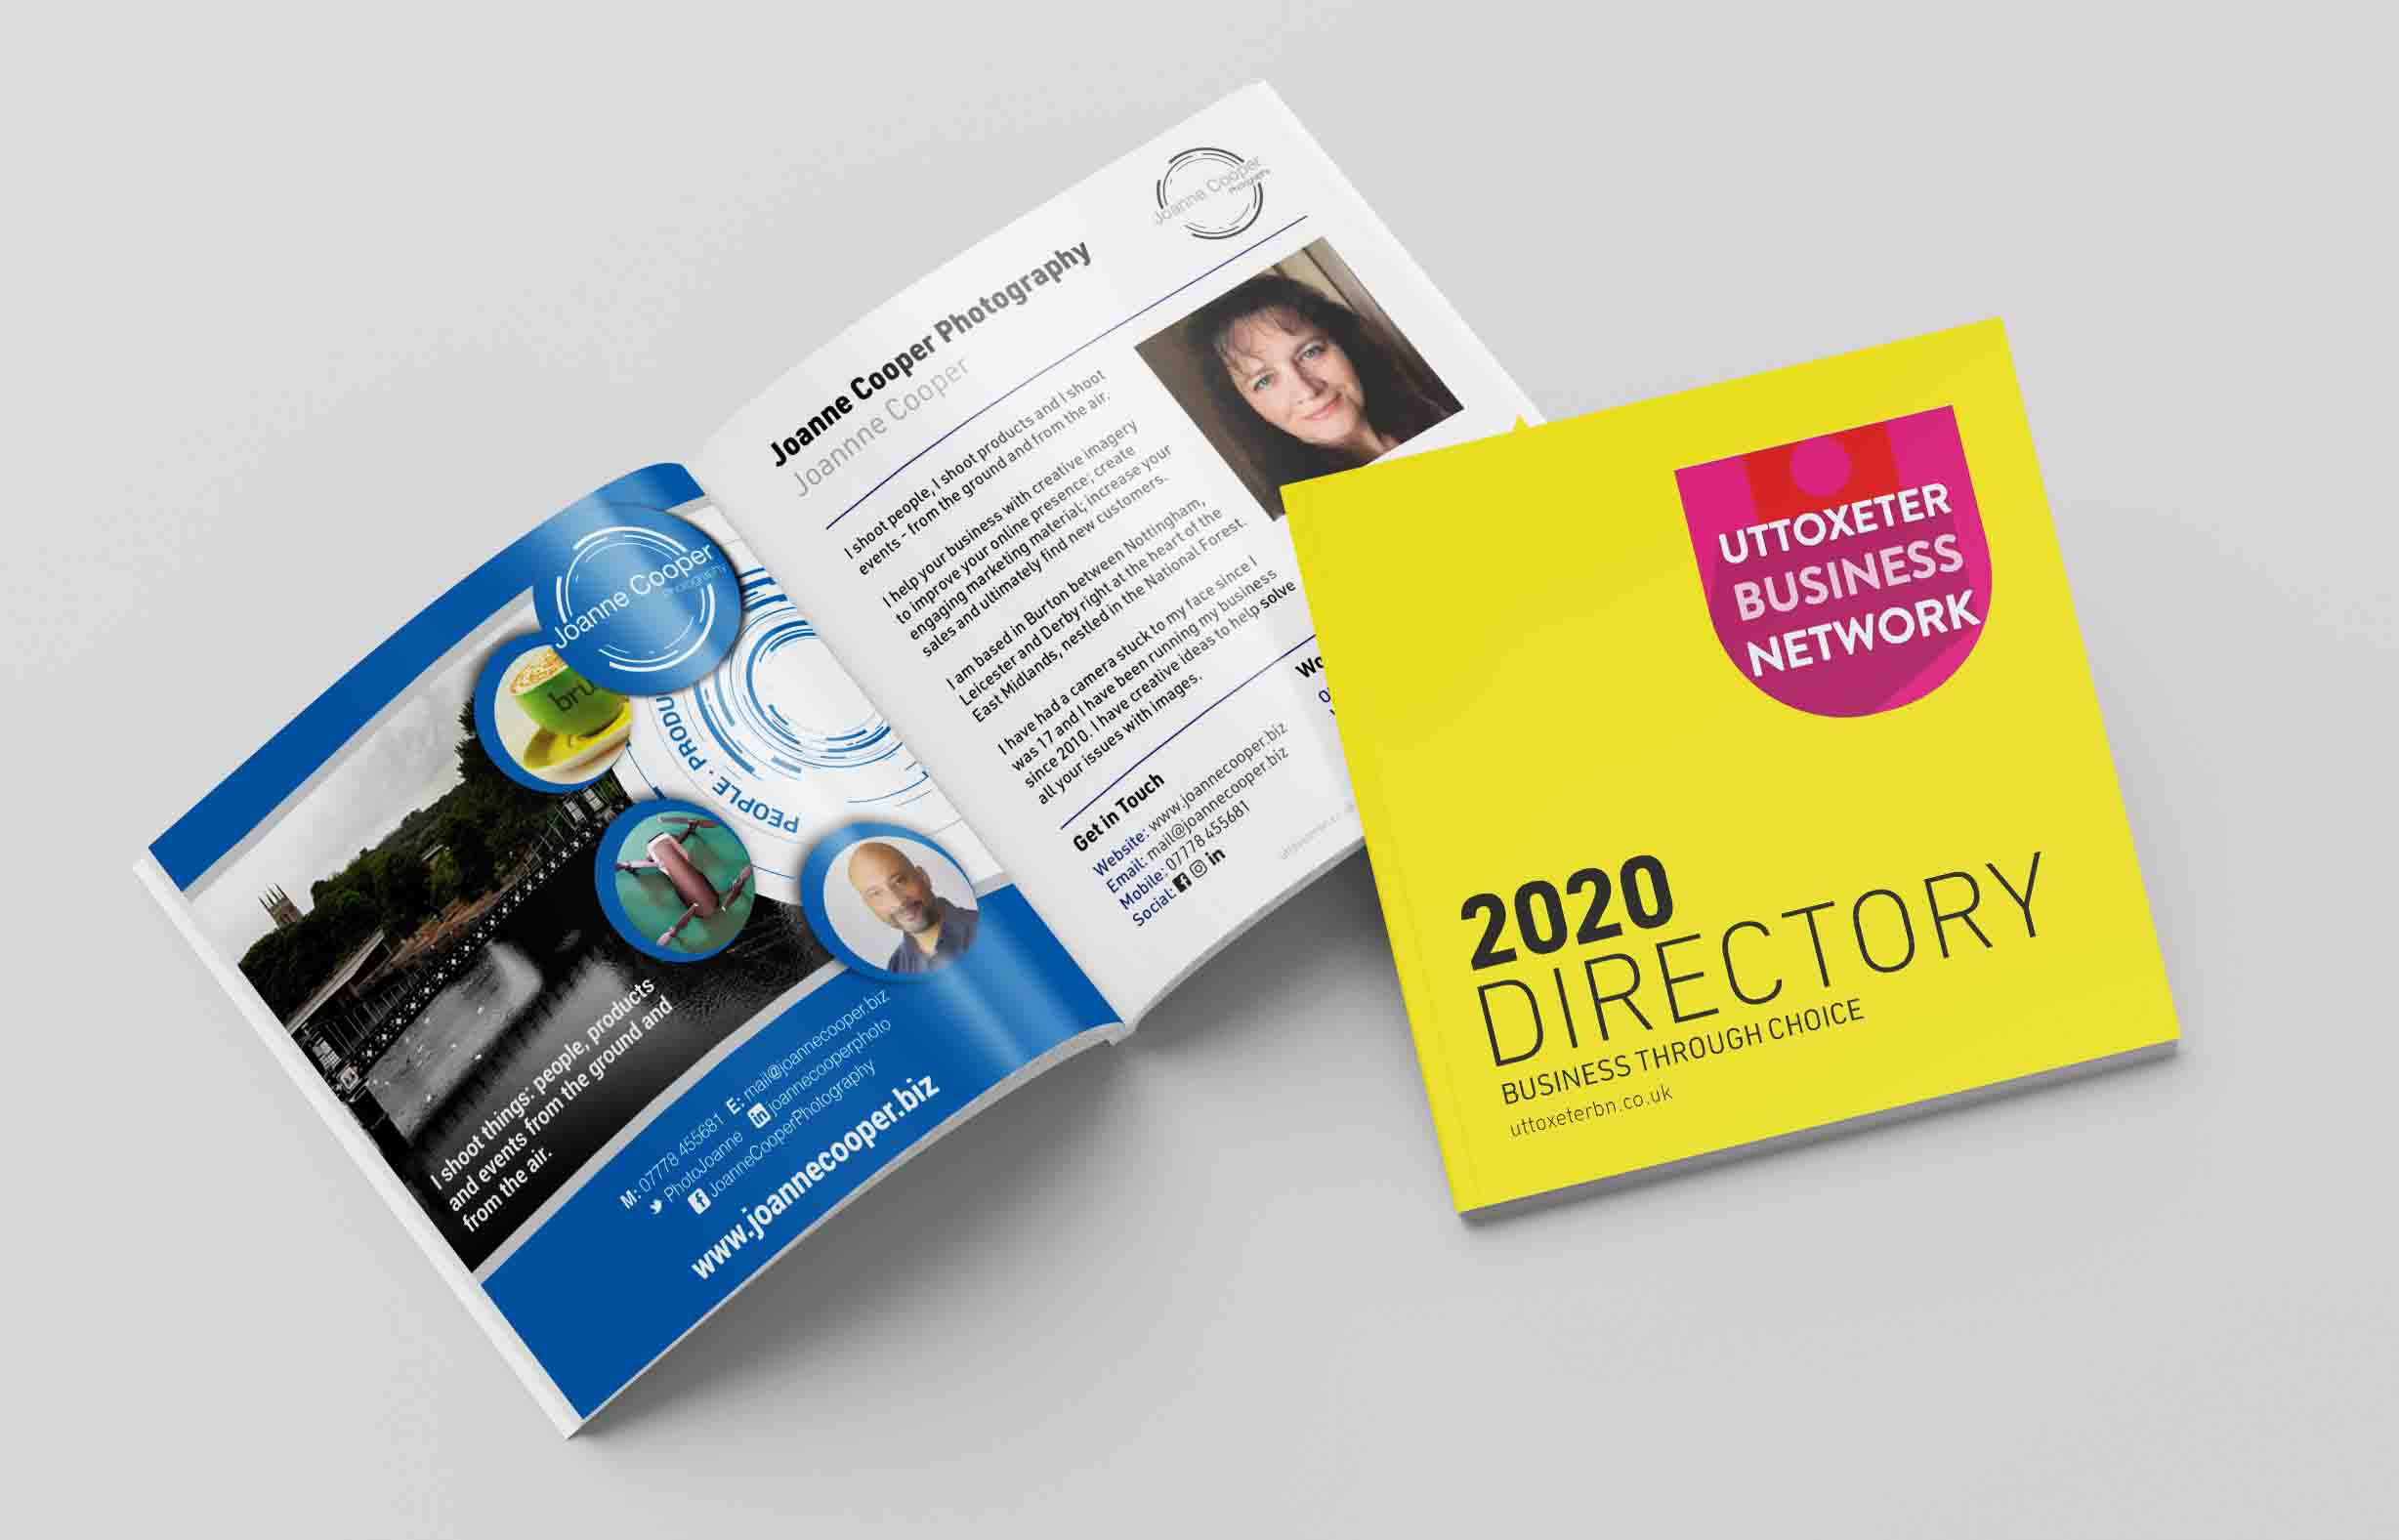 Uttoxeter Business Network Directory 2020 - profile page